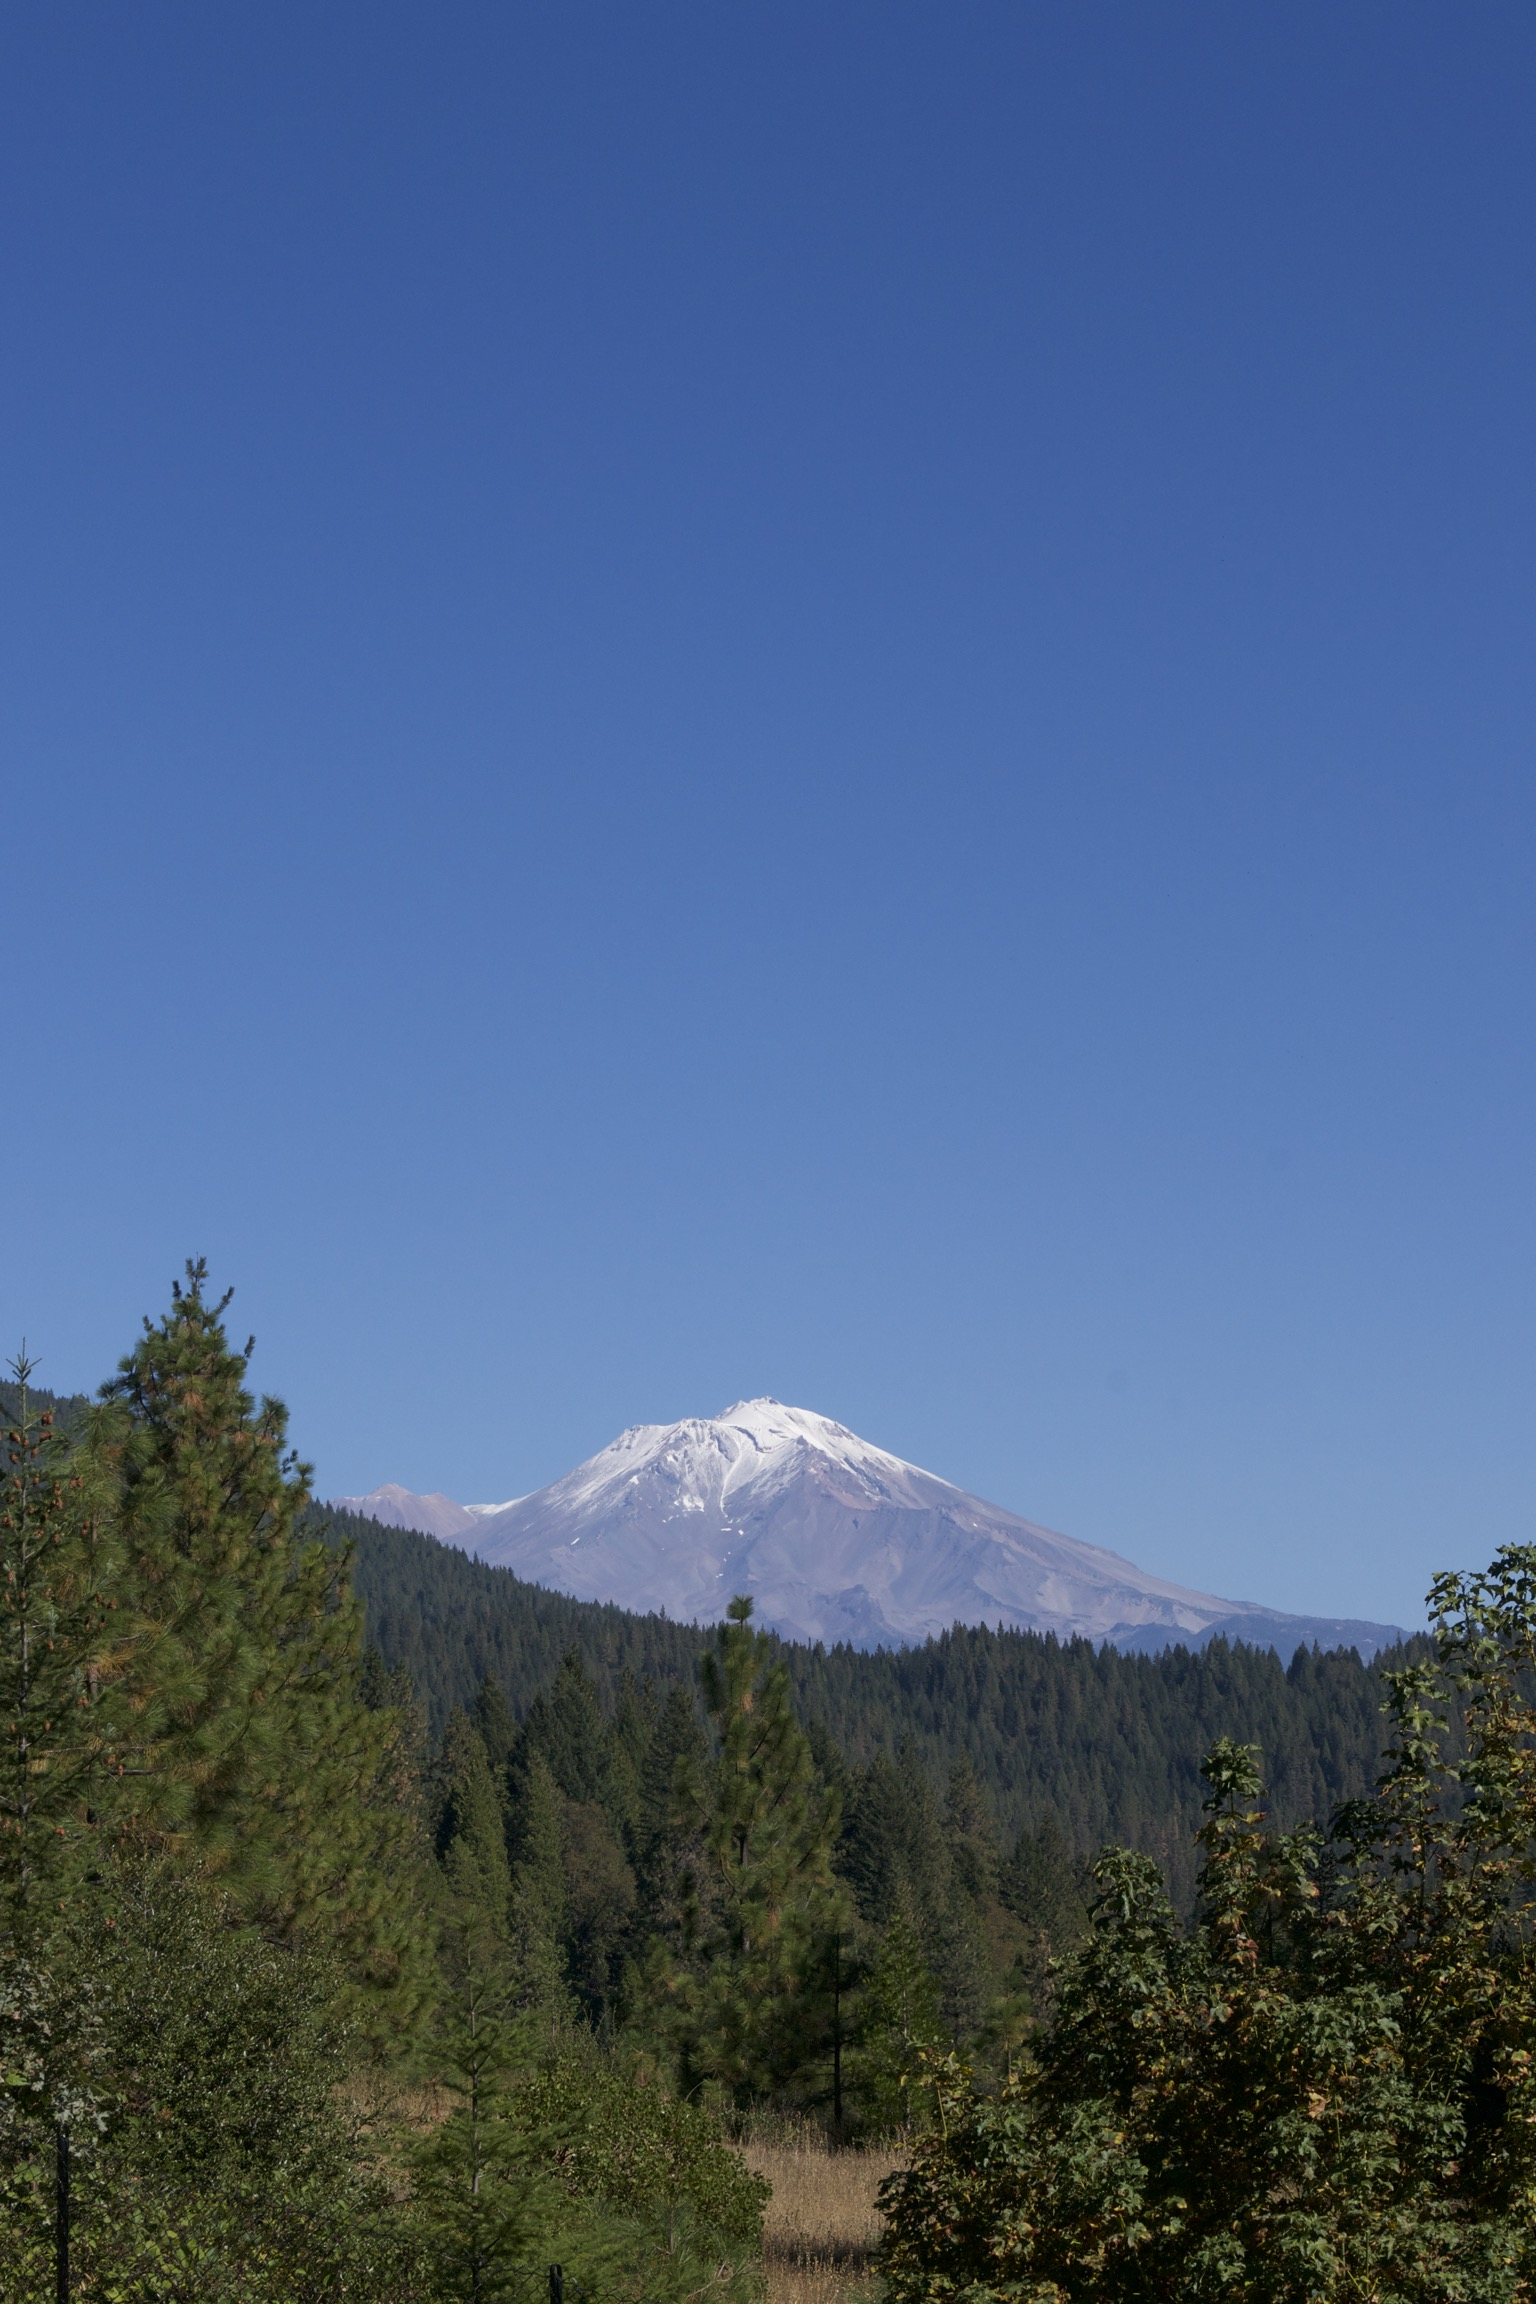 A forest of pines leads up to Shasta on the horizon, a deep blue sky overhead.